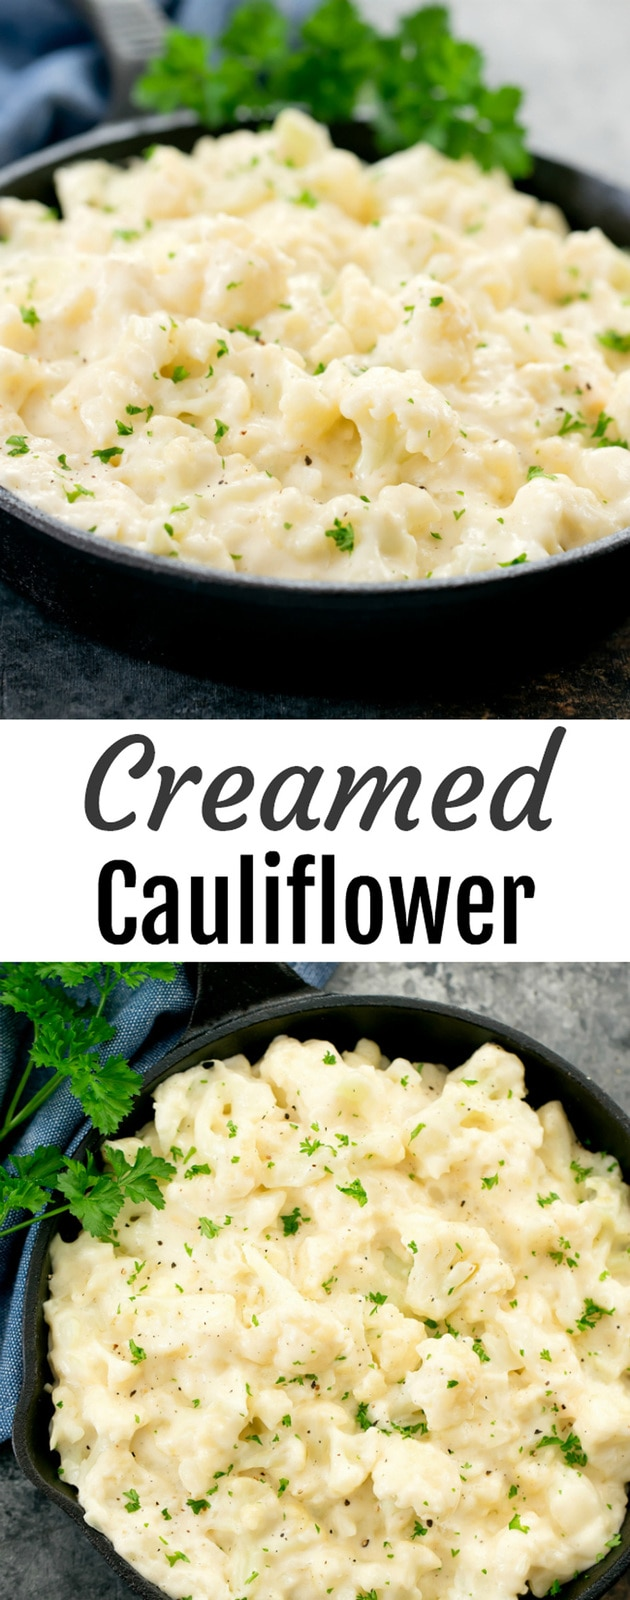 Creamed Cauliflower. An easy side dish perfect for the holidays and ready in less than 30 minutes. Tender cauliflower florets are cooked in a creamy, cheesy sauce. A fun twist on traditional creamed spinach or creamed corn.